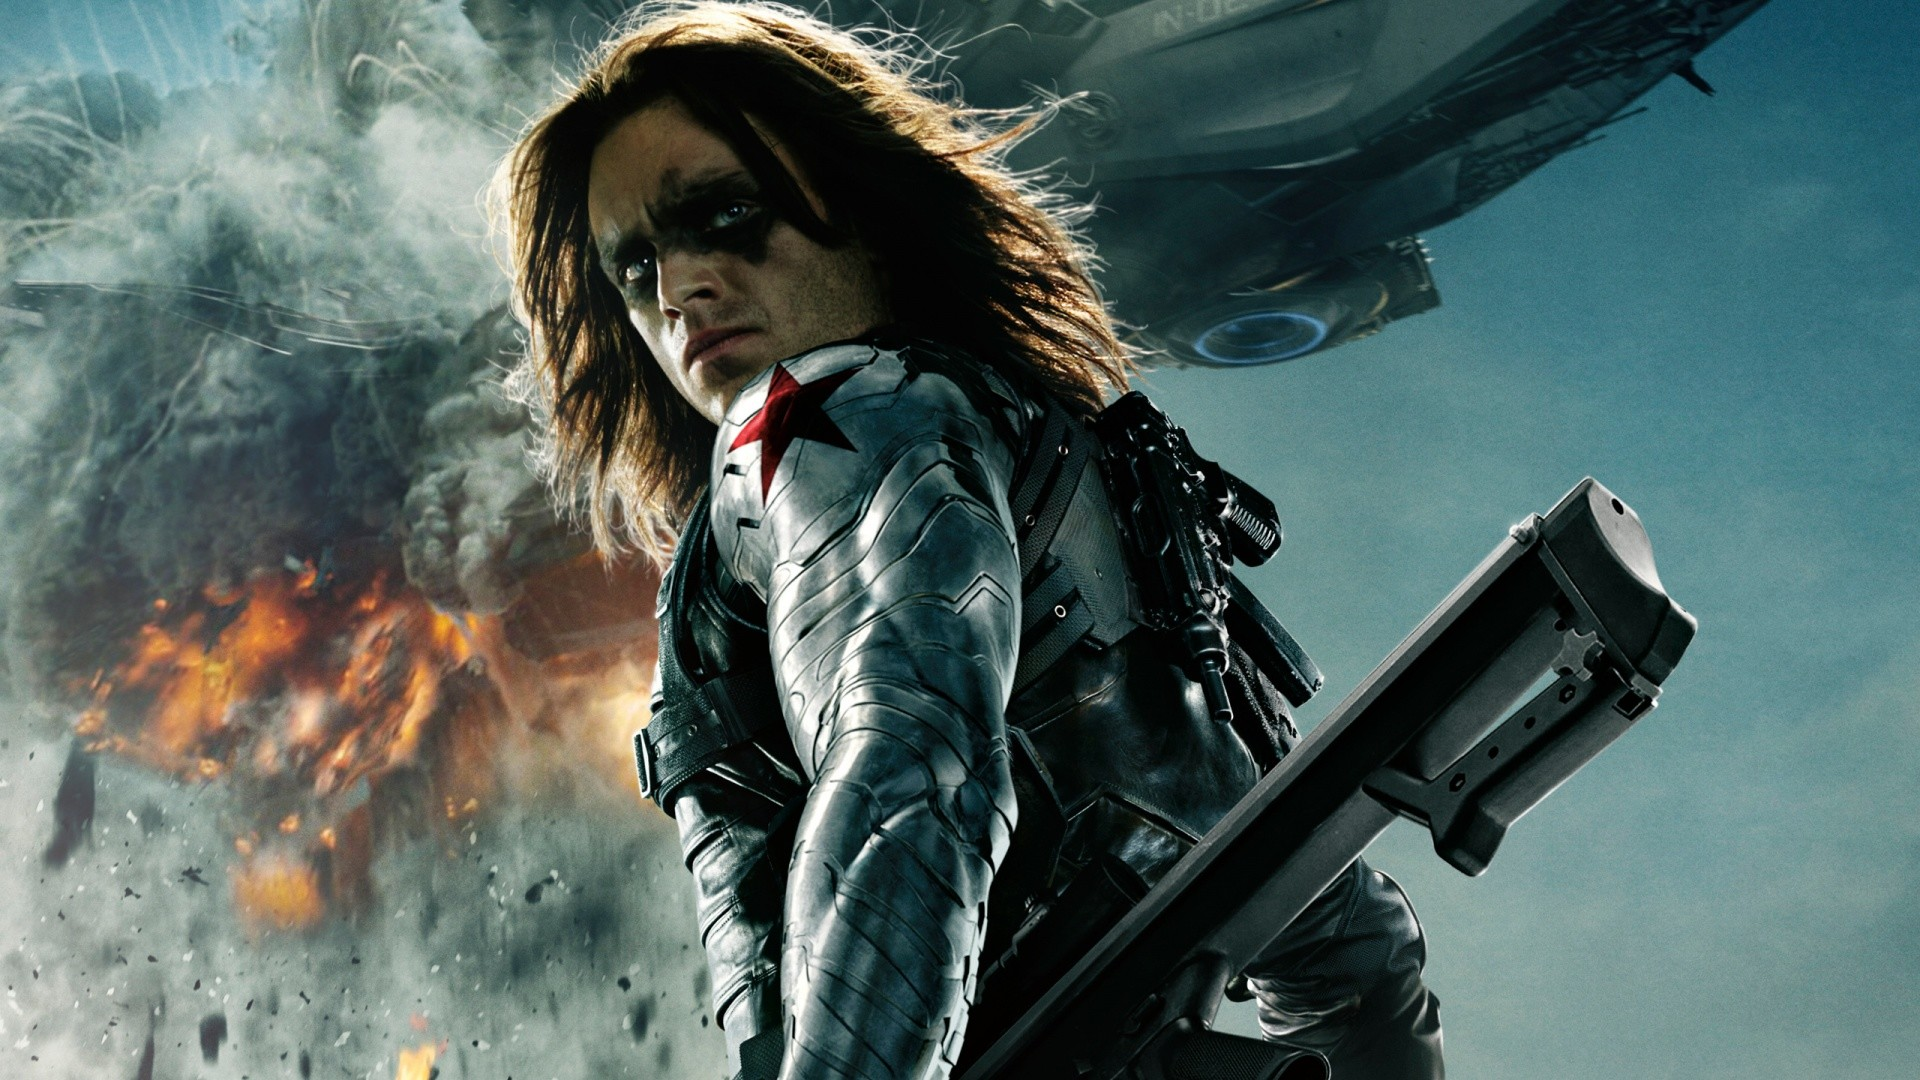 1920x1080 Marvel Live-action Filme Hintergrund probably containing a fire, a hip  boot, and. captain america winter soldier.